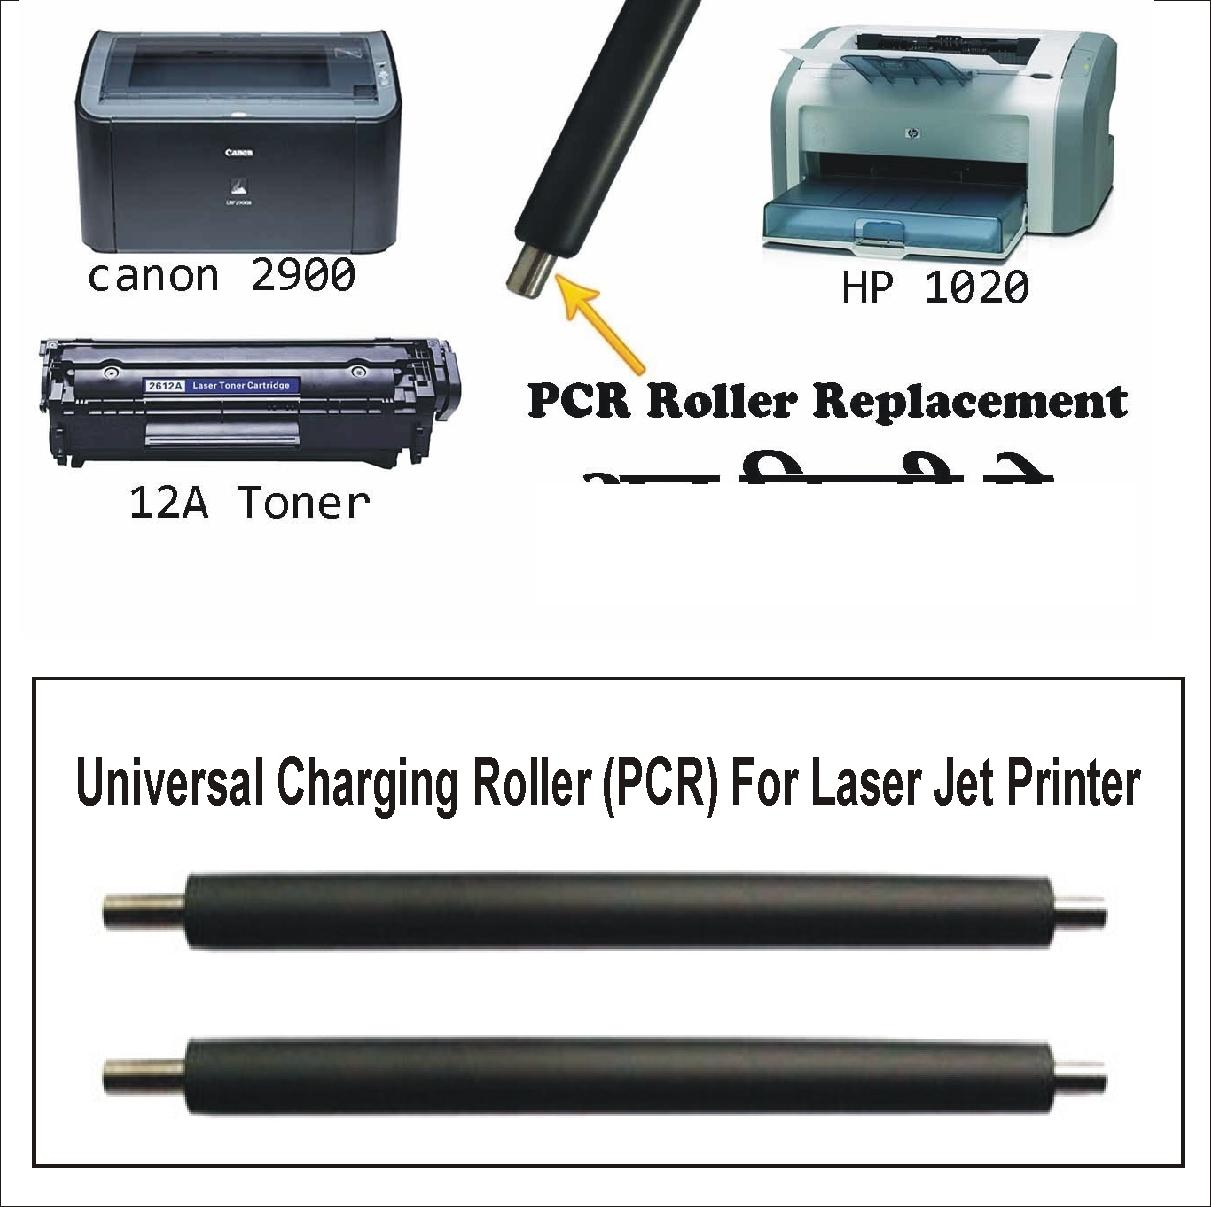 Primary Charging Roller / Printer PCR / Toner Cartridge PCR for HP, Canon  12A, 49A,53A,05A,13A,15A,80A